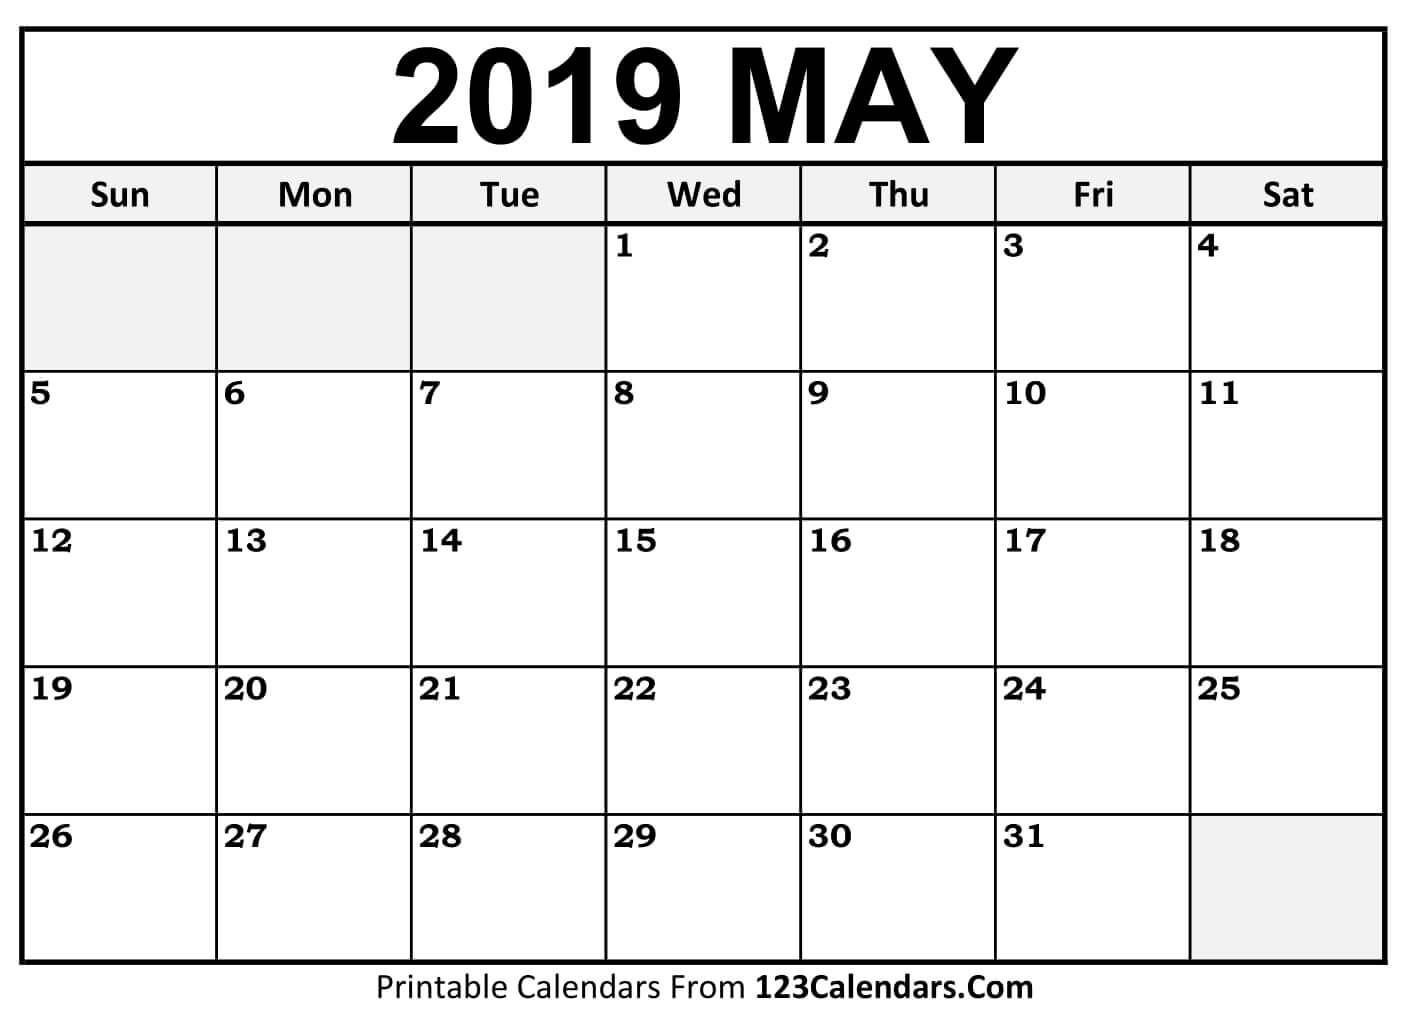 Blank Monthly Calendar Template Pdf Calendar 2019 May May May2019 May2019calendar Floral